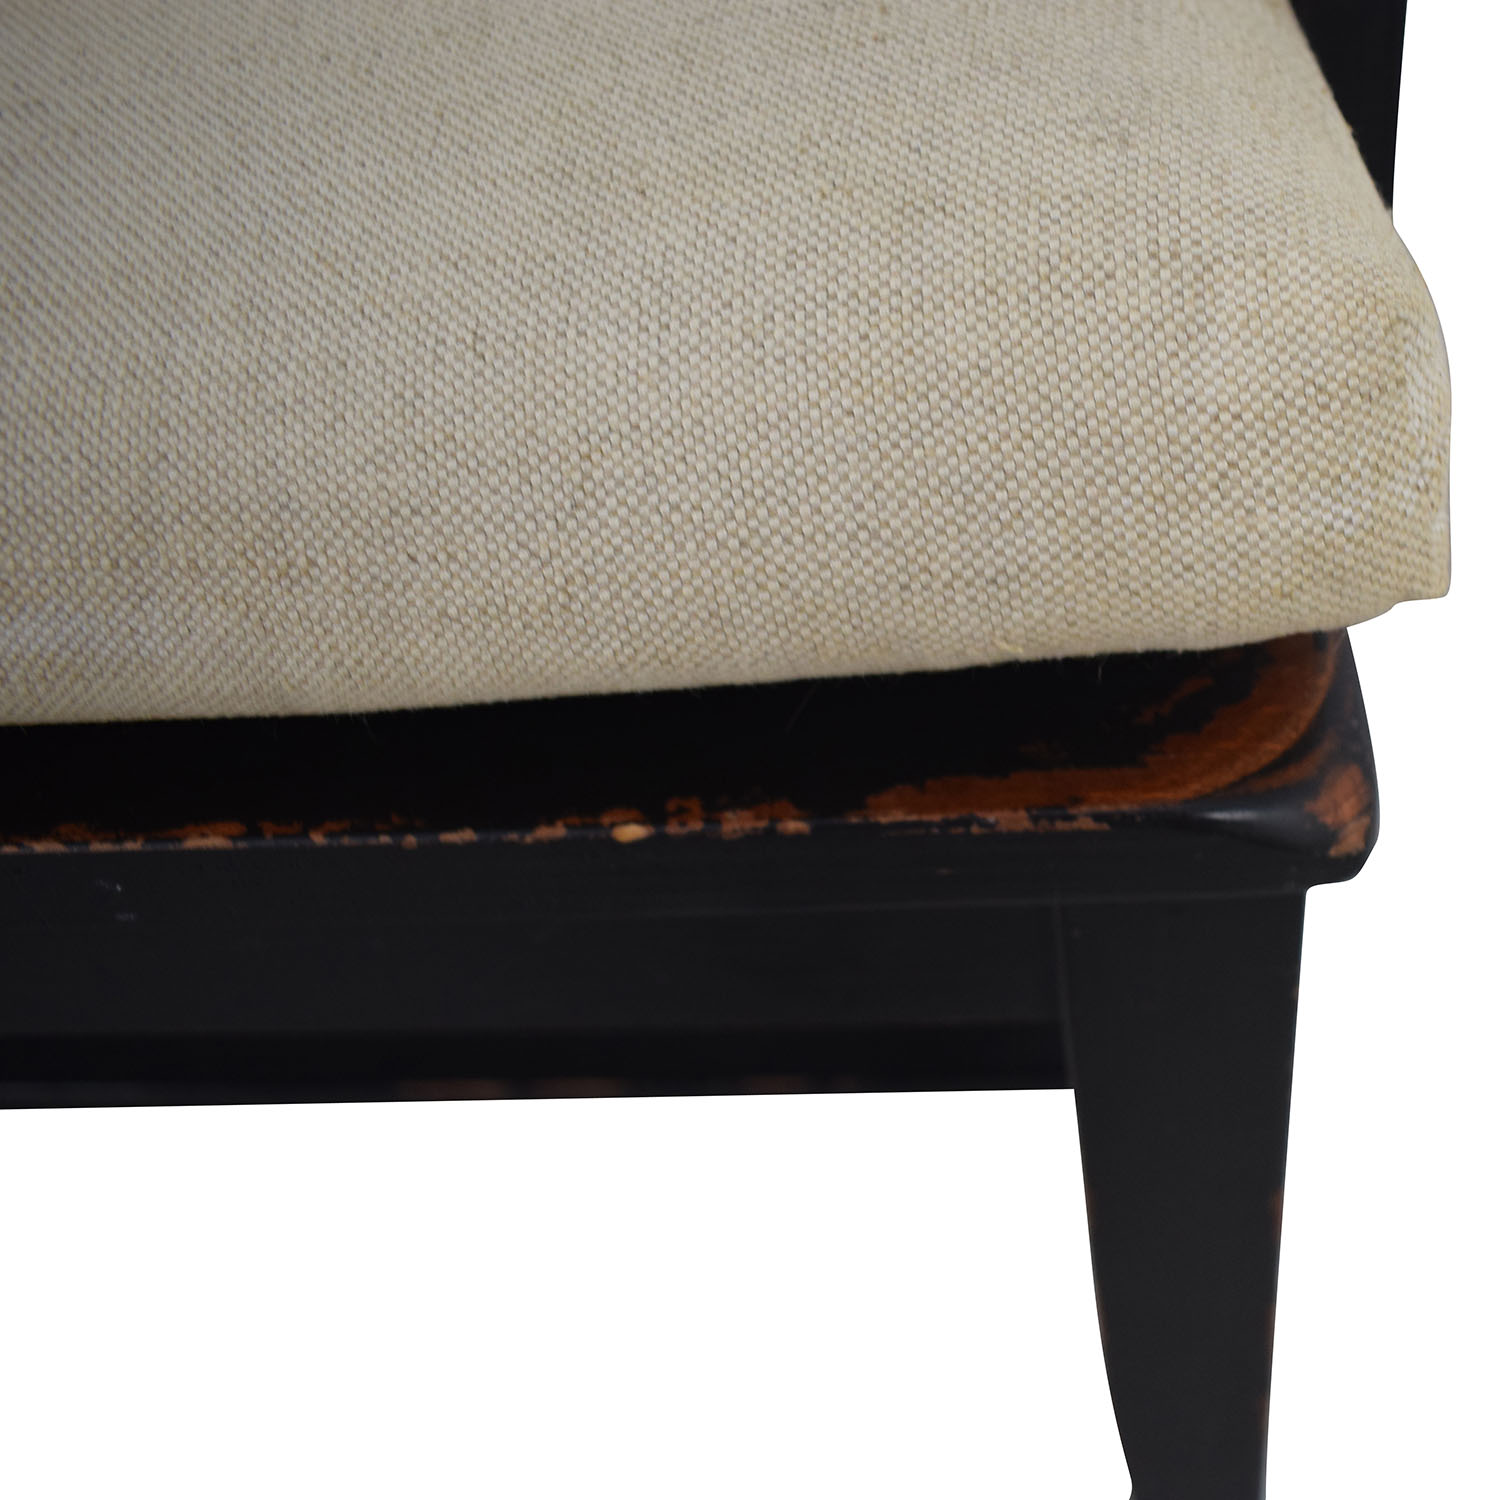 Crate & Barrel Crate & Barrel Wood Bench with Cushion second hand